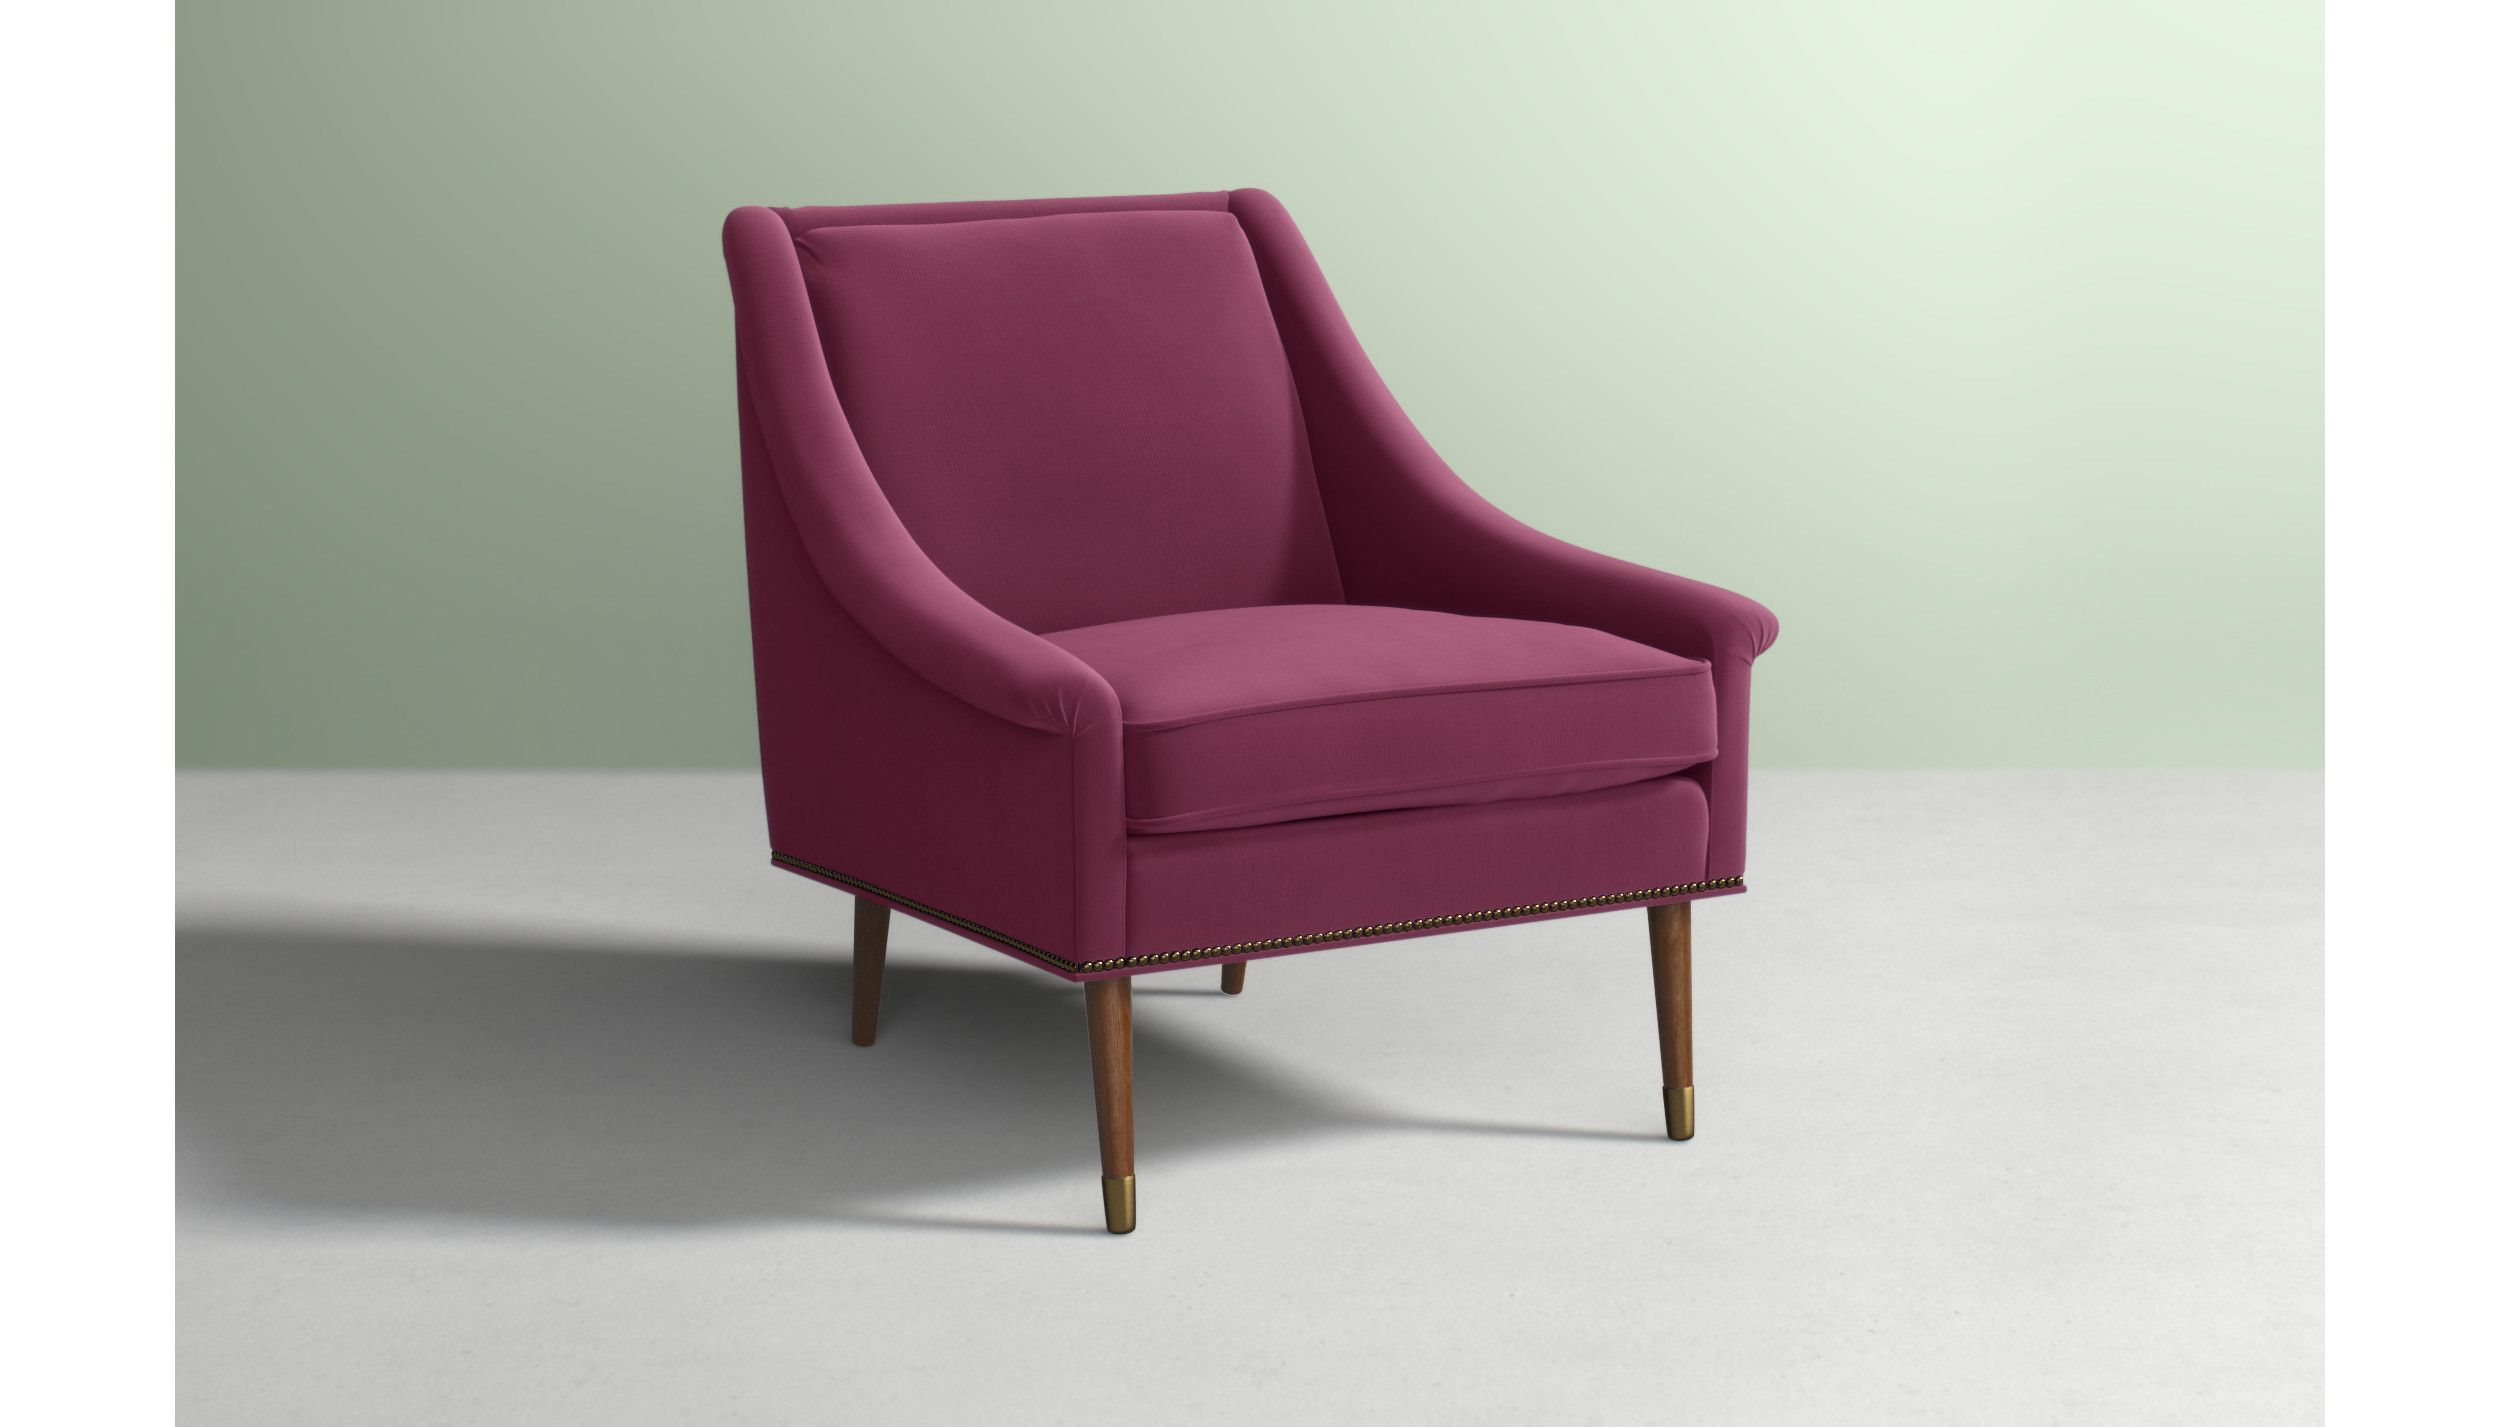 Tillie Chair Chair Living Room Chairs Furniture